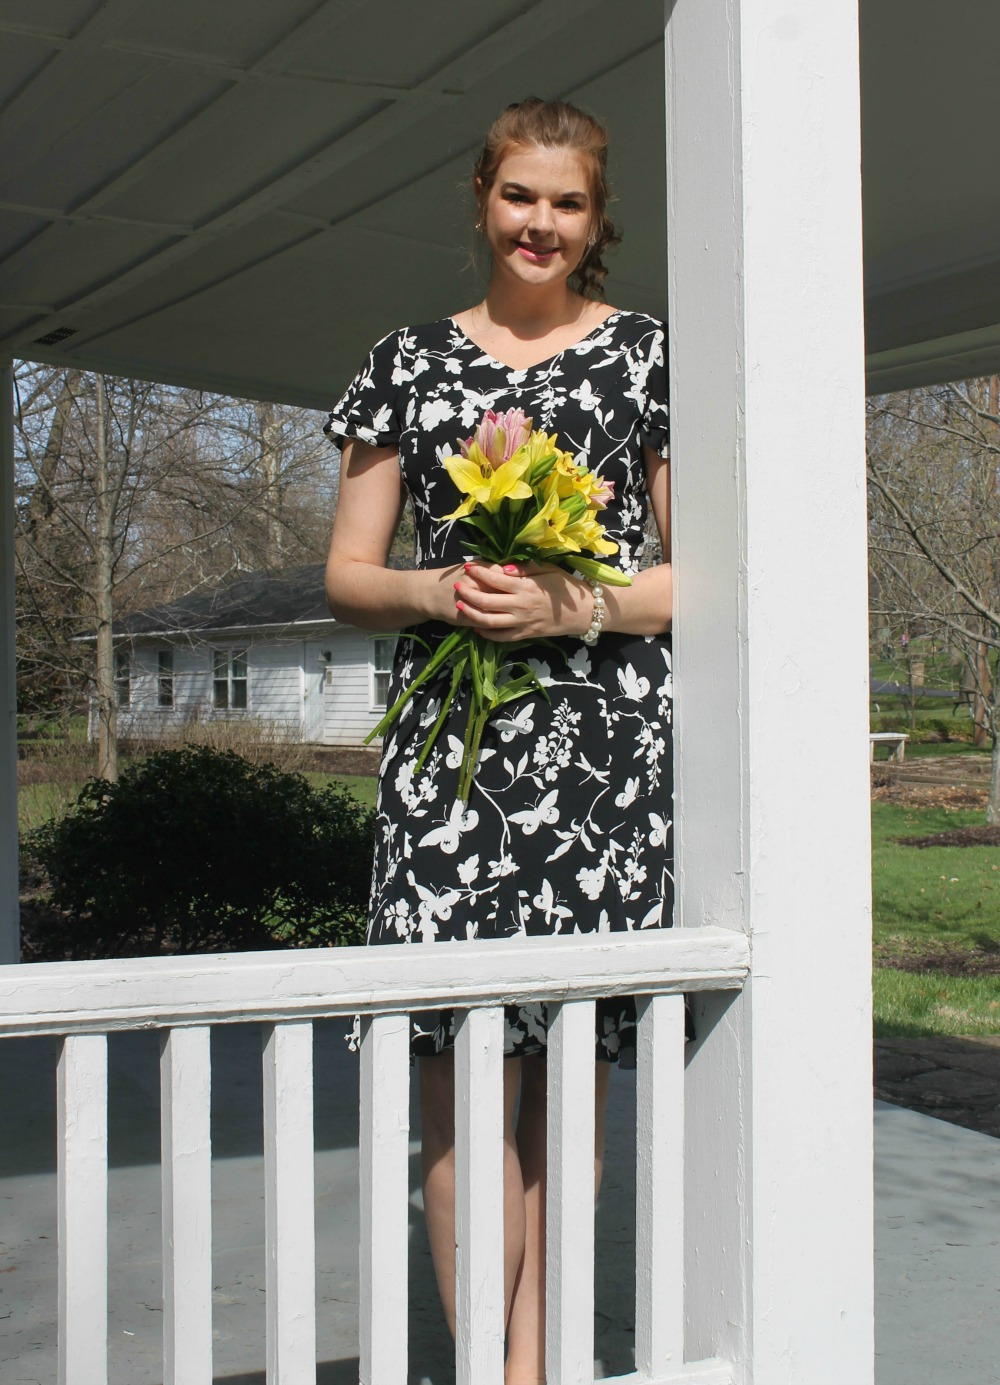 Talbots Occasion Wear I Spring 2018 RSVP Collection Butterfly Print Dress and Flats #Talbots #SpringStyle #Occasion